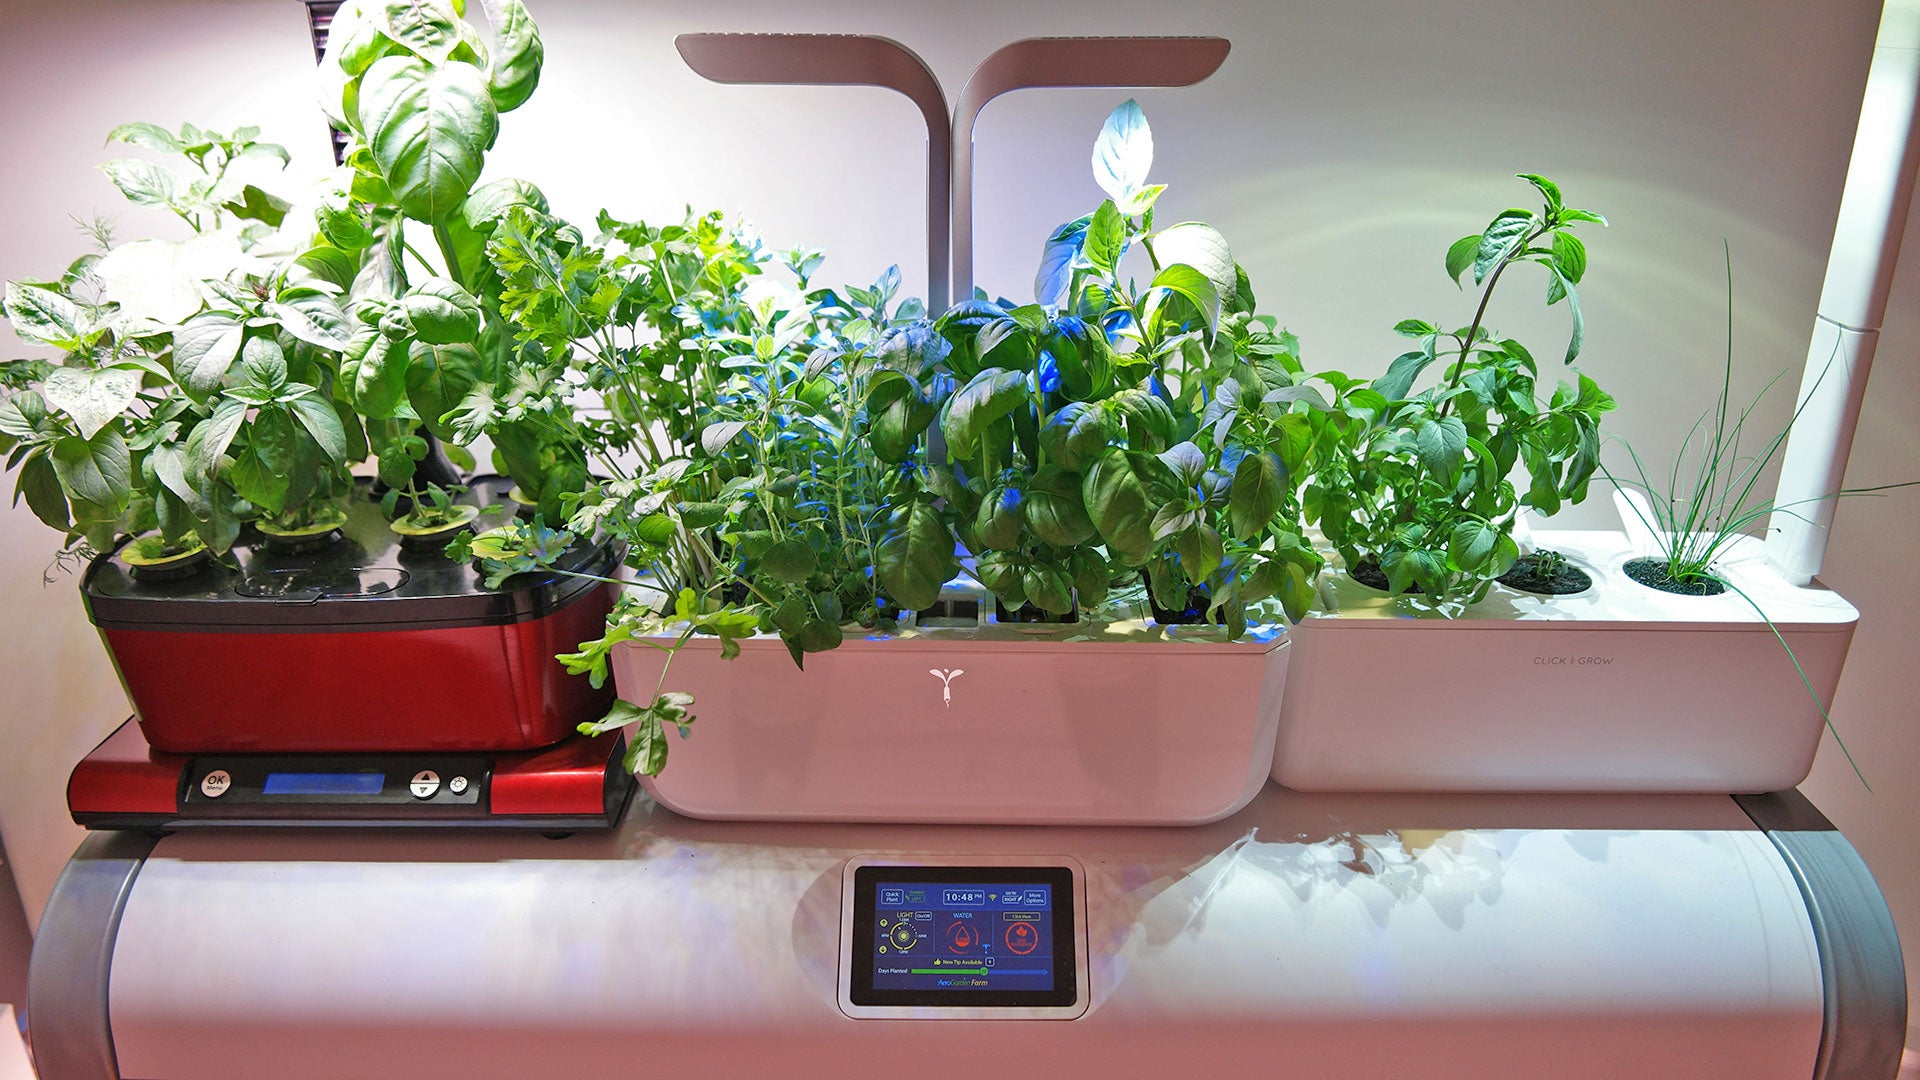 How Transforming My Apartment Into An Indoor Farm Turned Into A Very Bad Idea